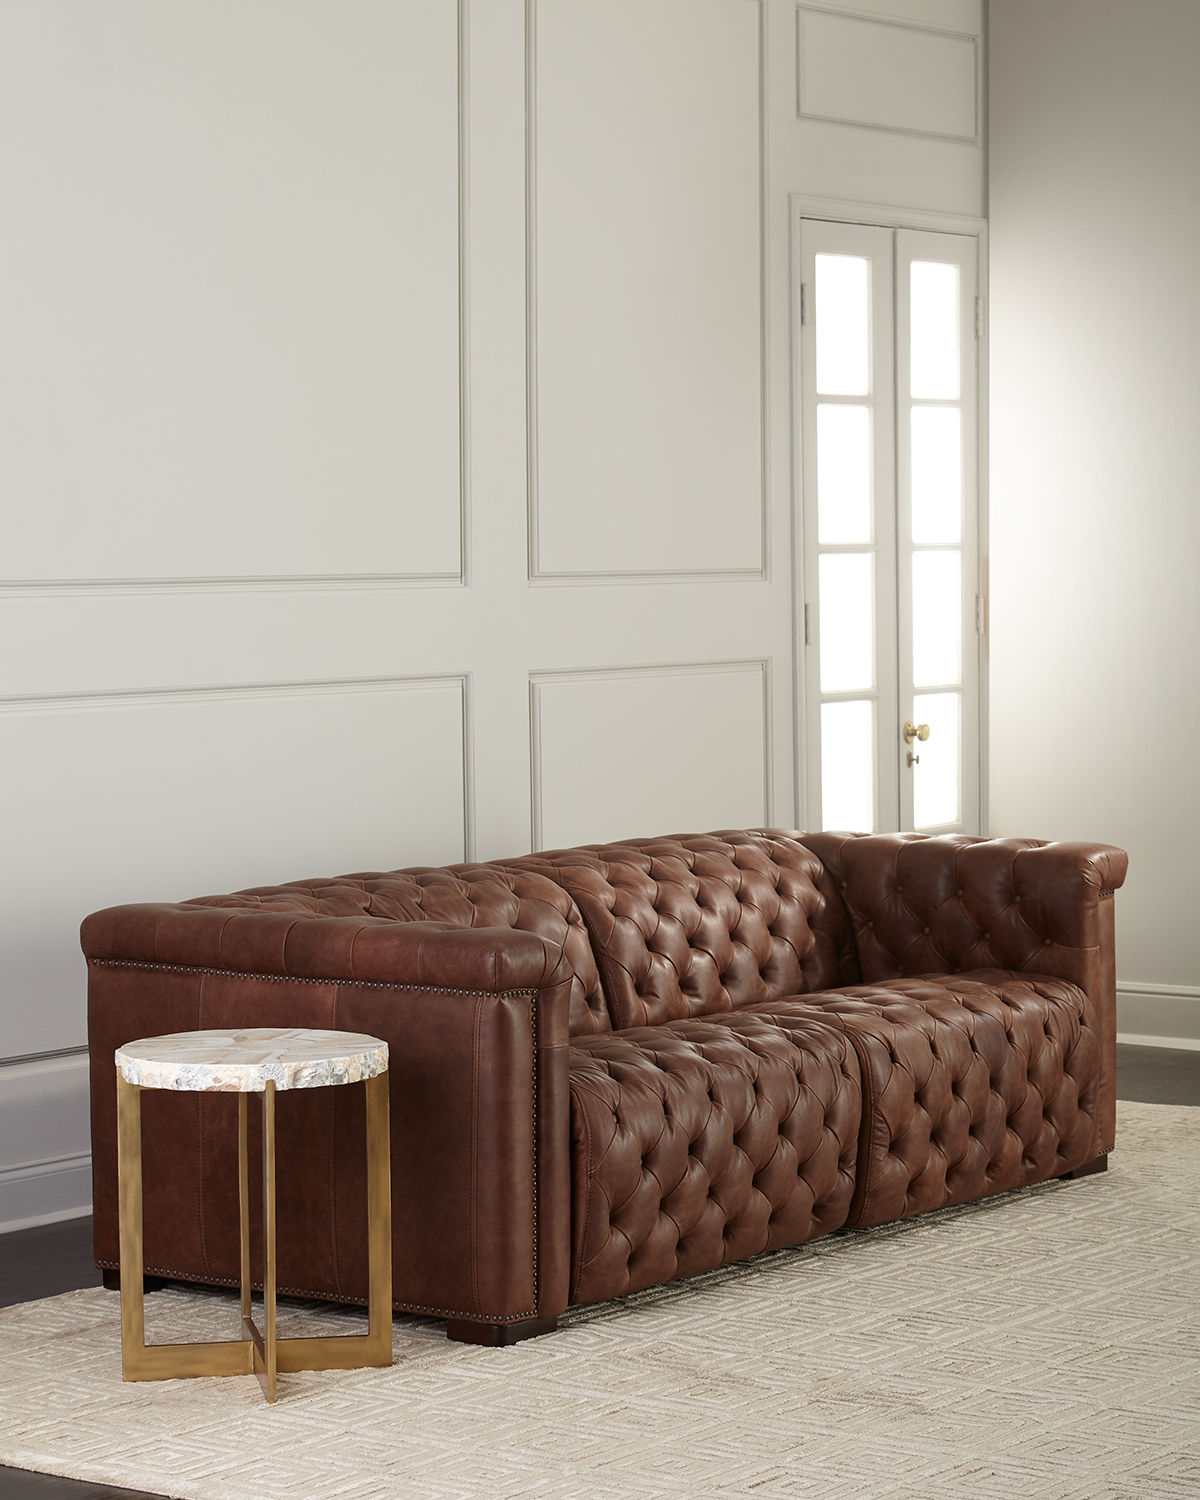 Hooker Furniture Luca Tufted Leather Motion Sofa, 88\